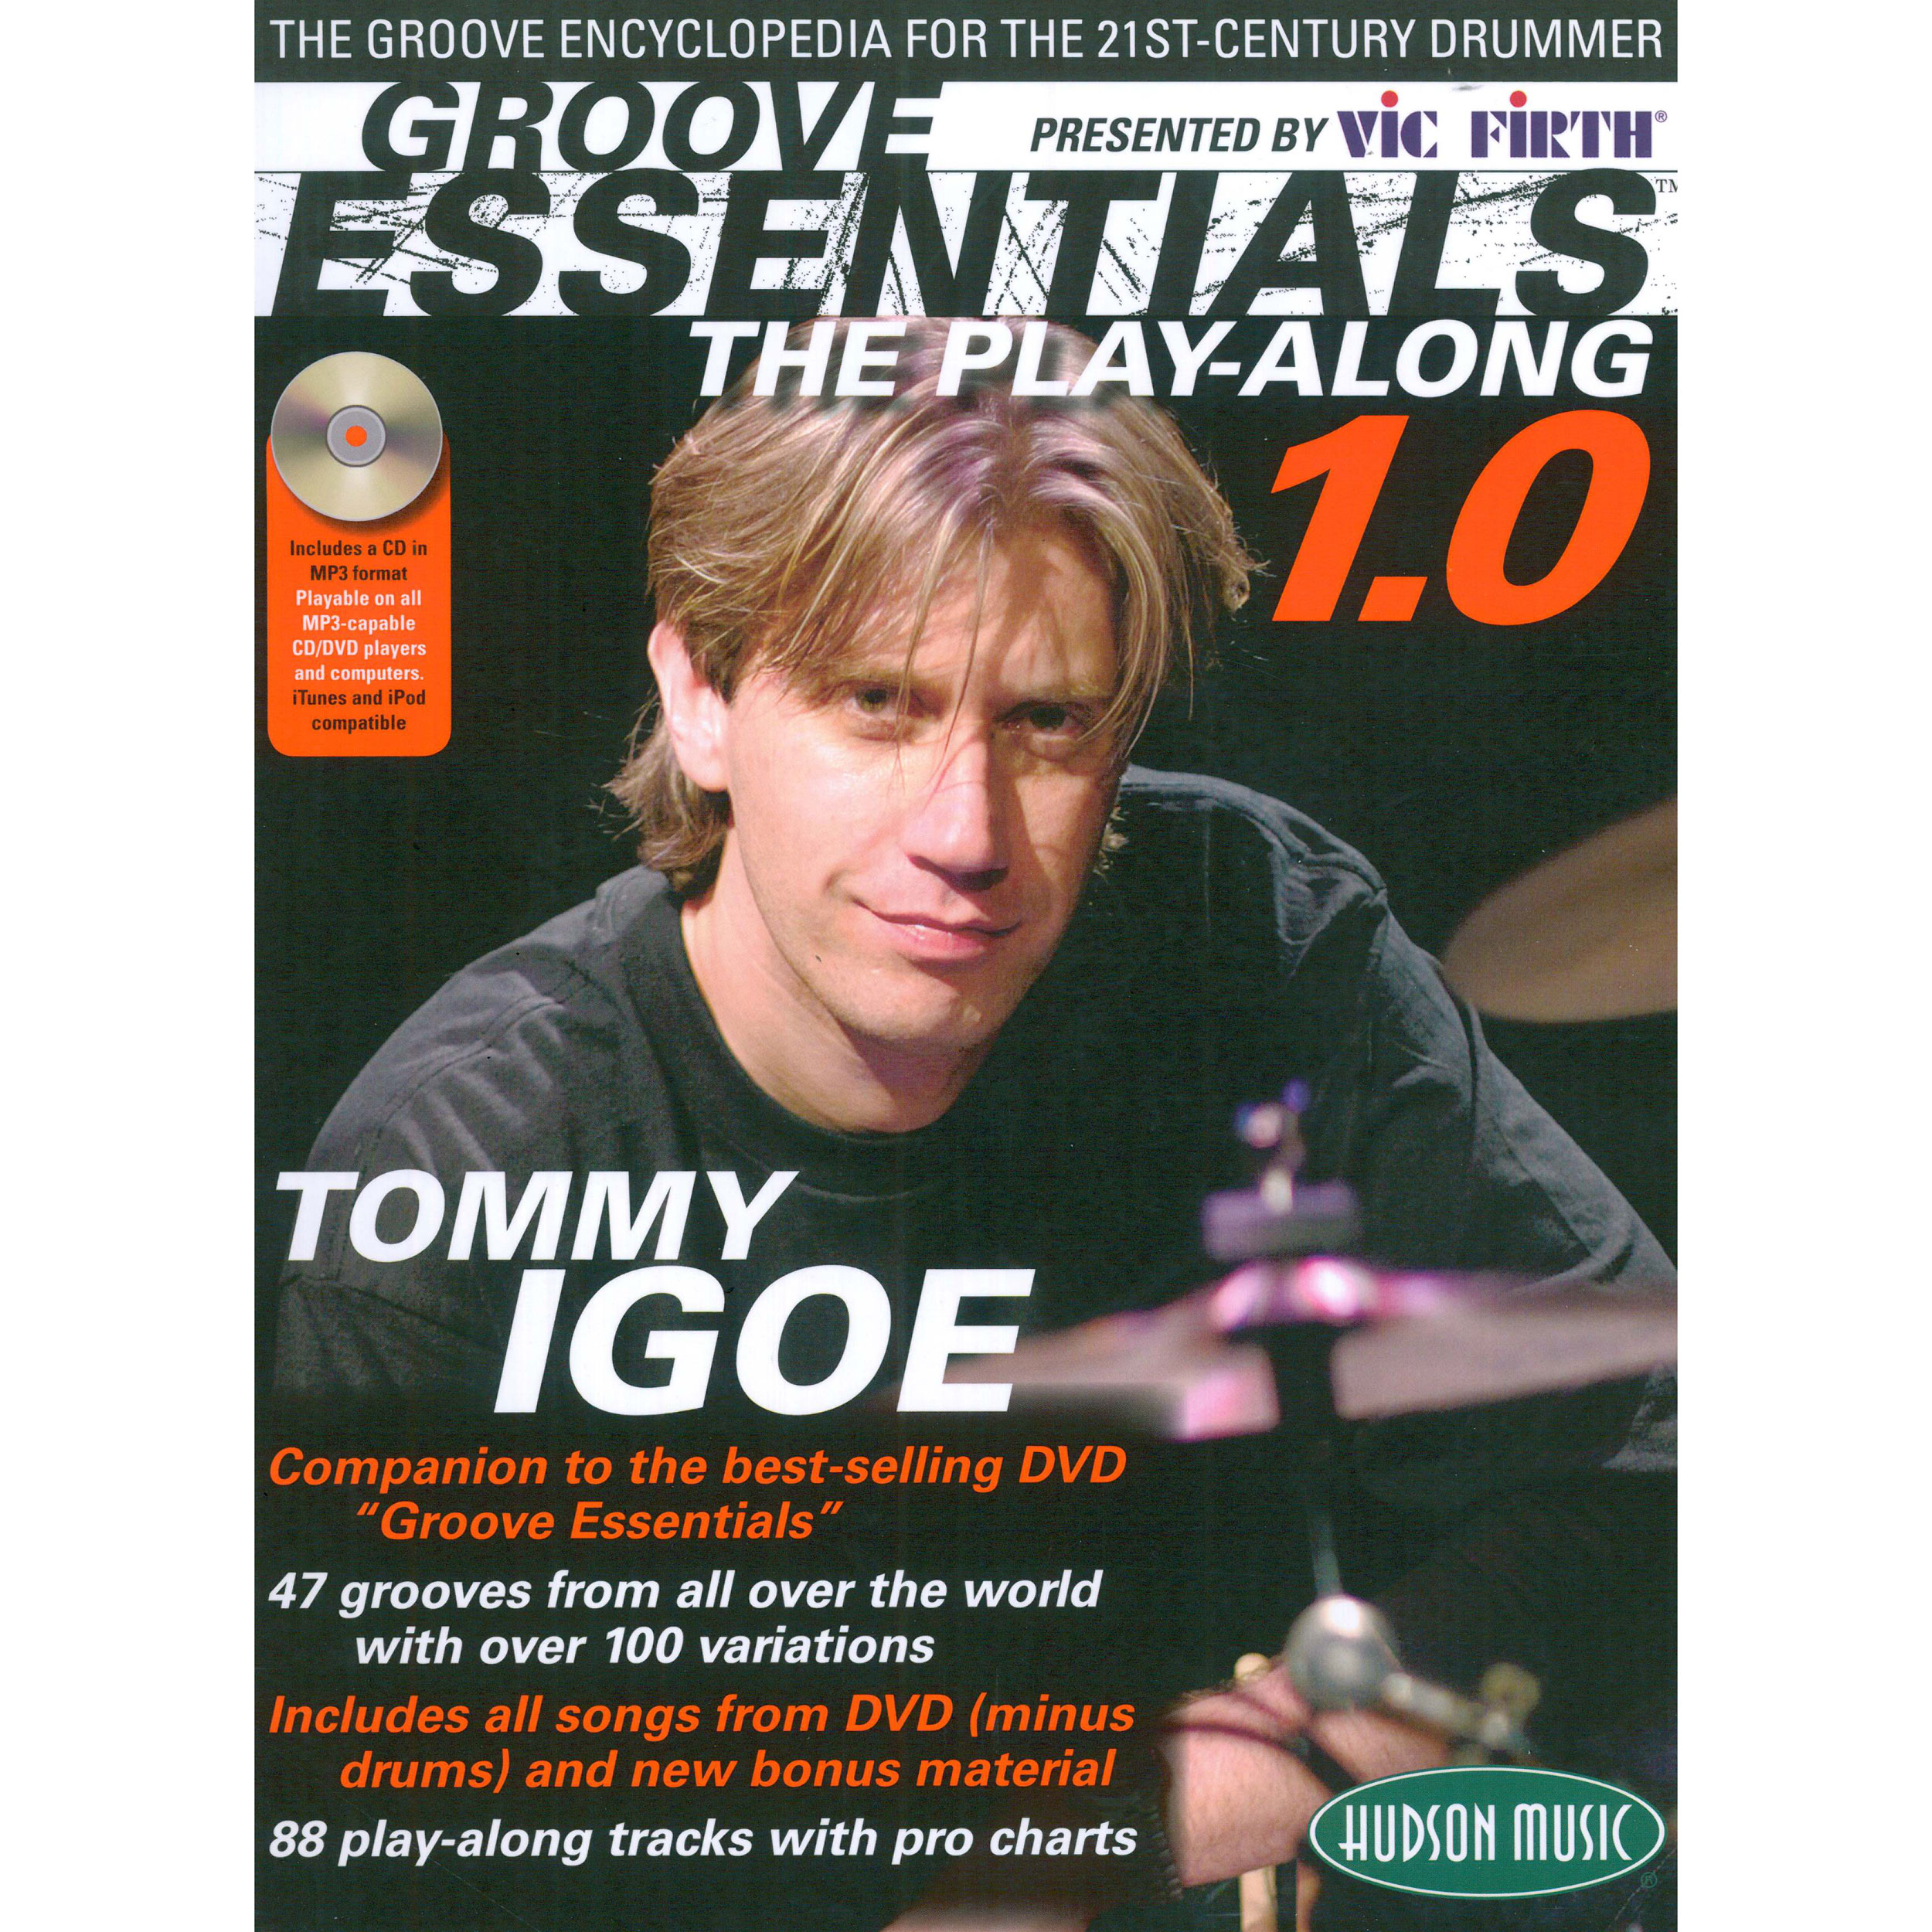 Groove Essentials 1.0 Book/CD/DVD Pack by Tommy Igoe